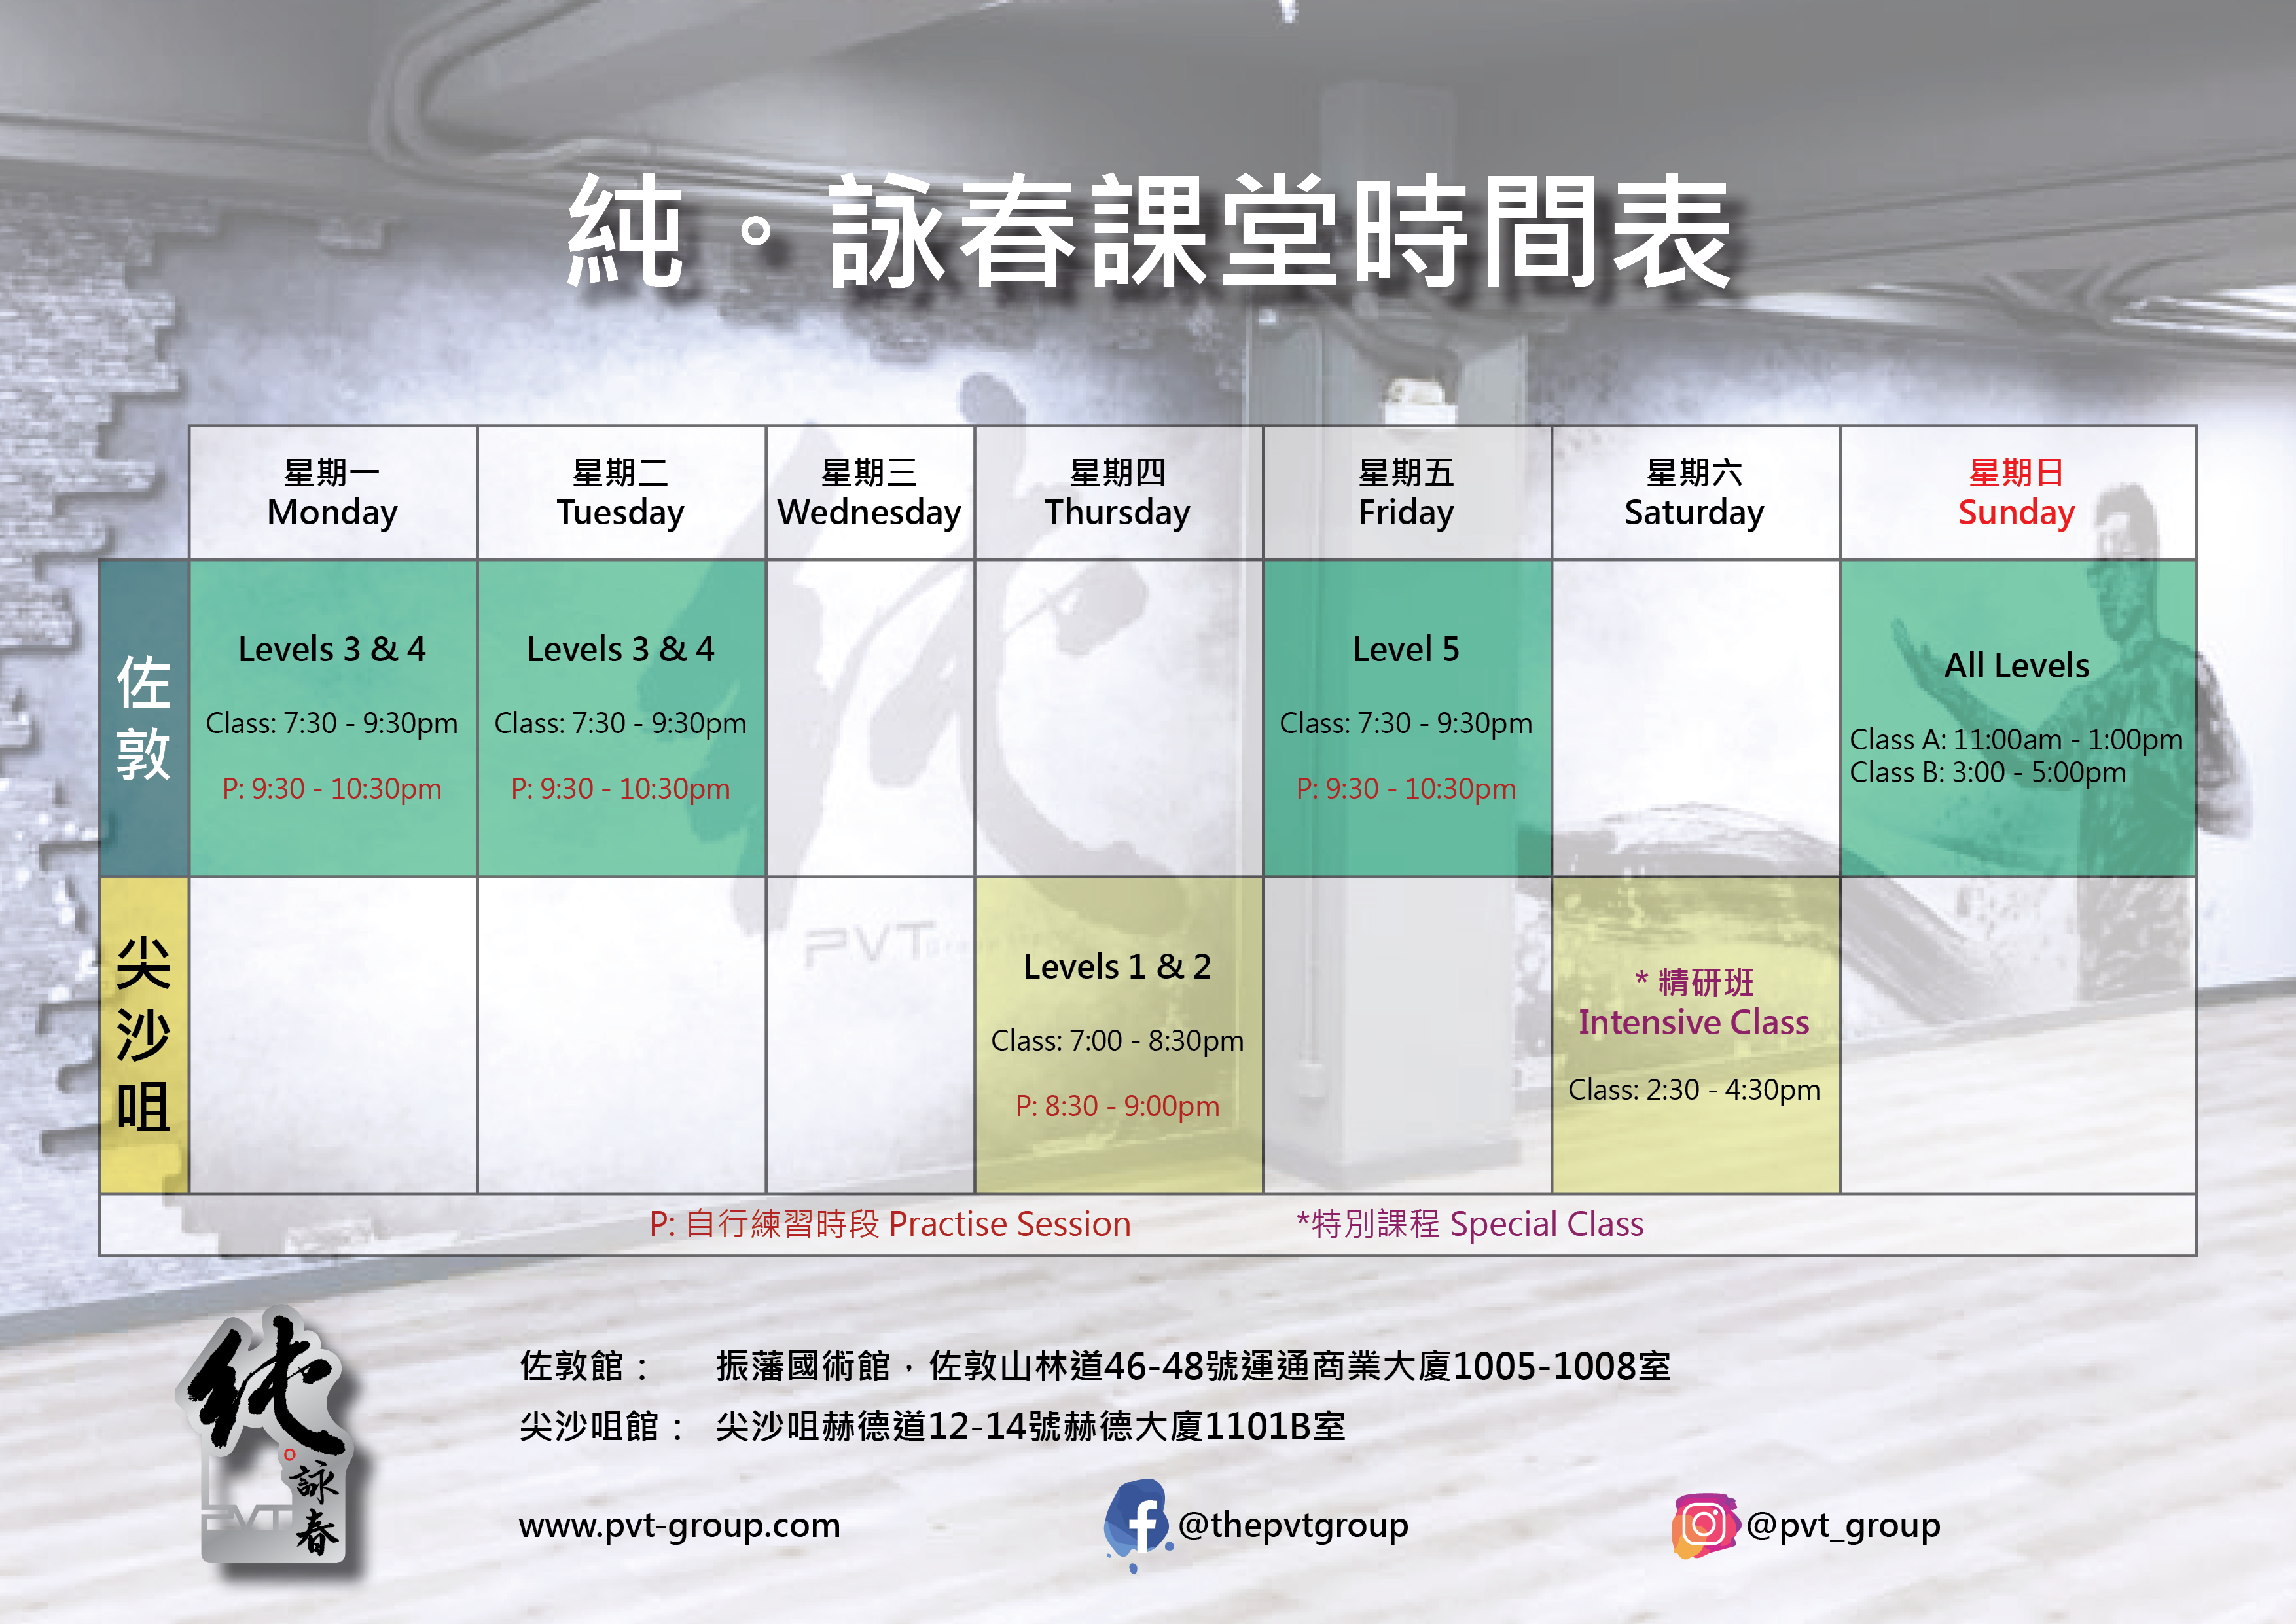 PVT Timetable